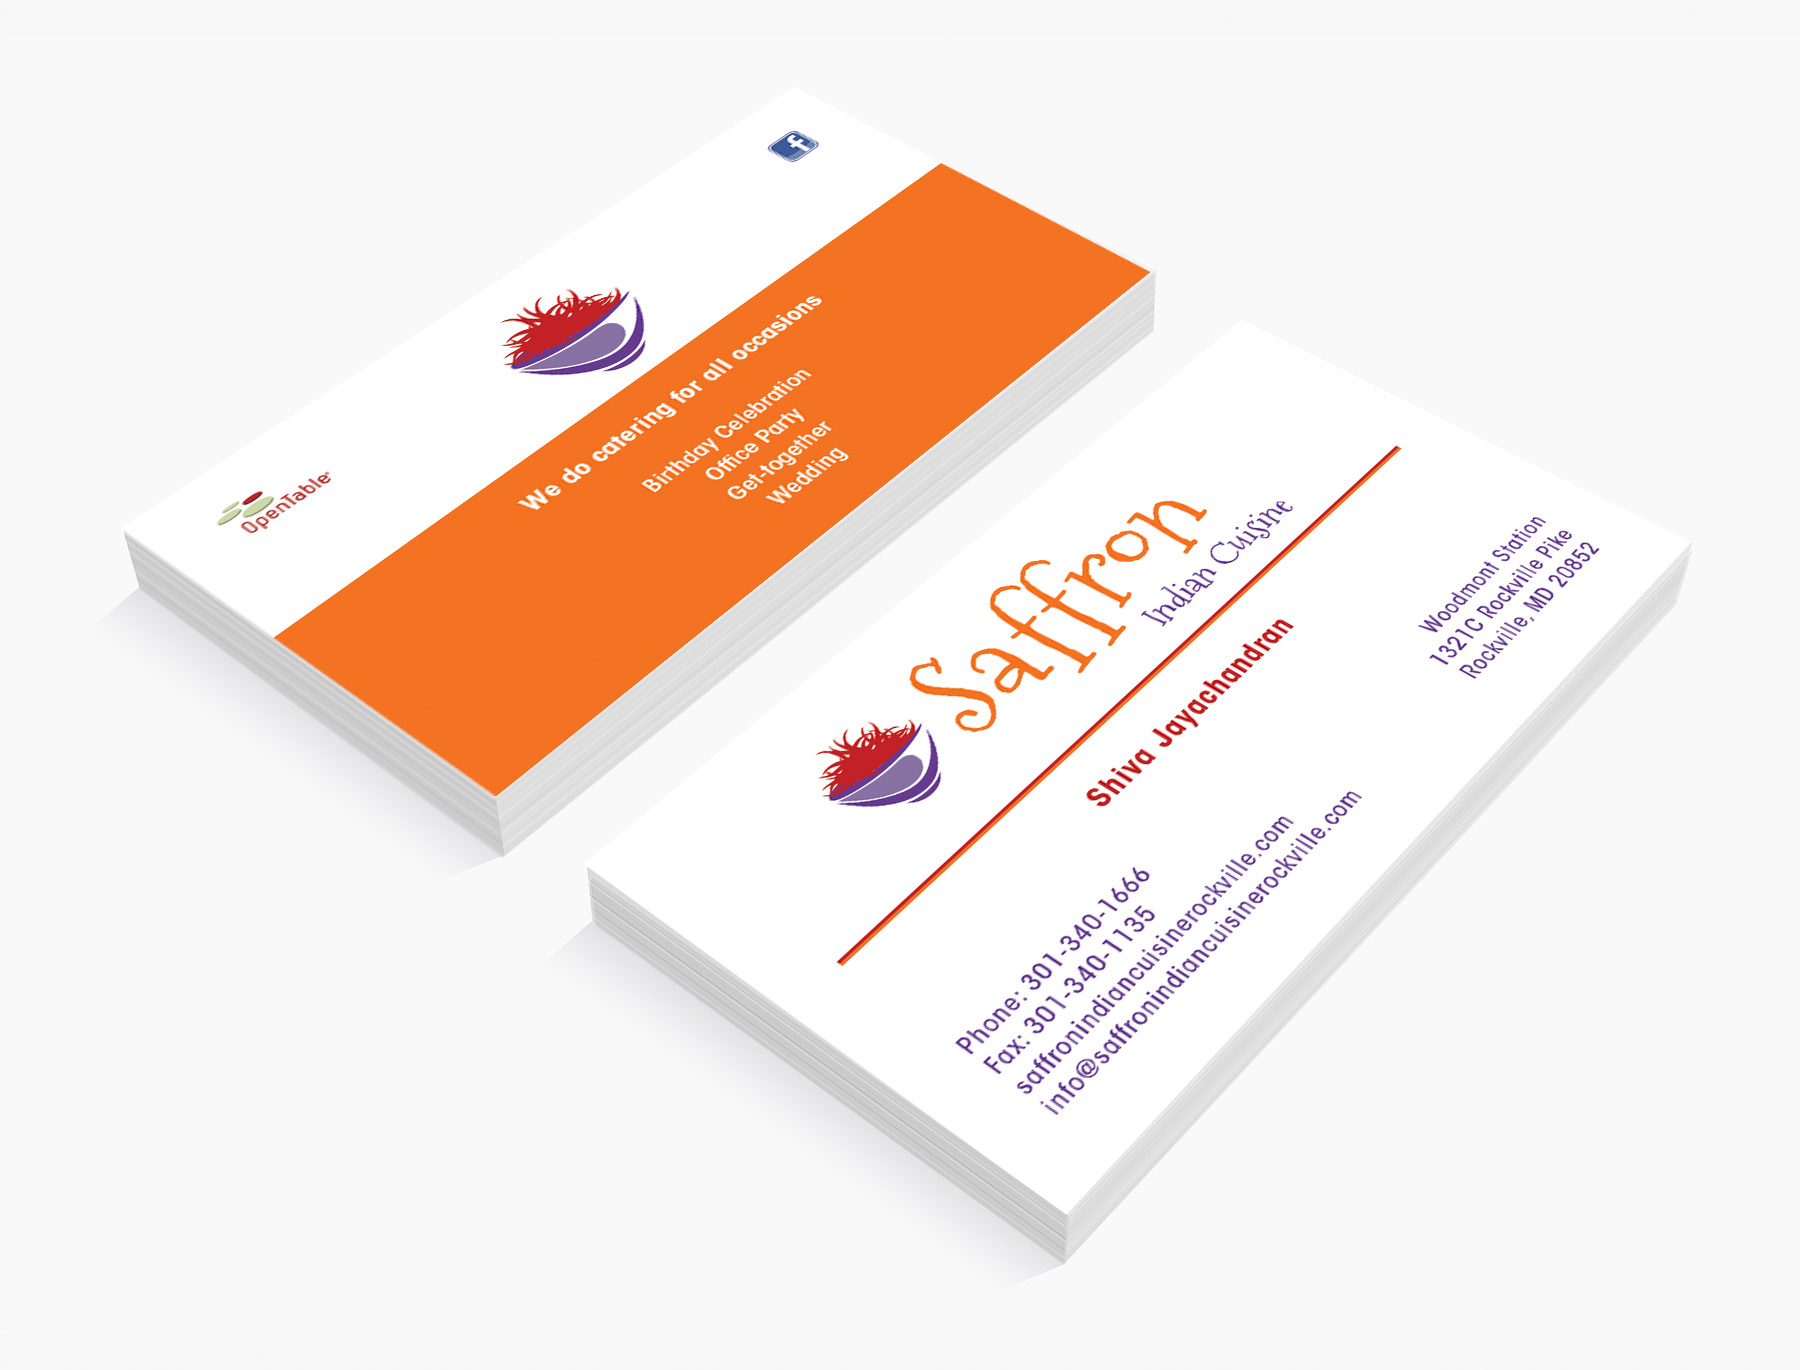 Saffron business cards.jpg